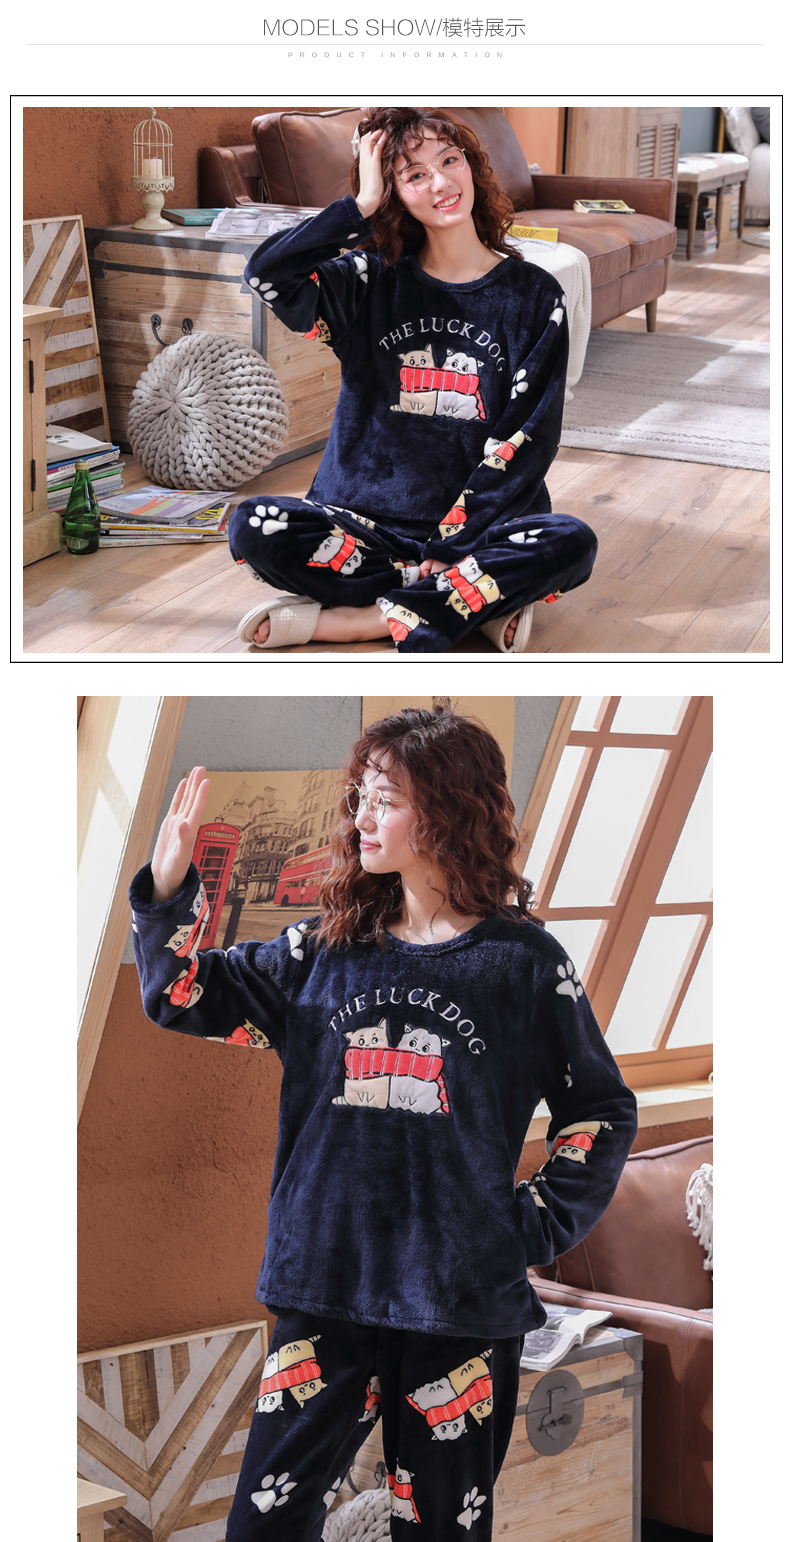 Long Sleeve Warm Flannel Pajamas Winter Women Pajama Sets Print Thicken Sleepwear Pyjamas Plus Size 3XL 4XL 5XL 85kg Nightwear 317